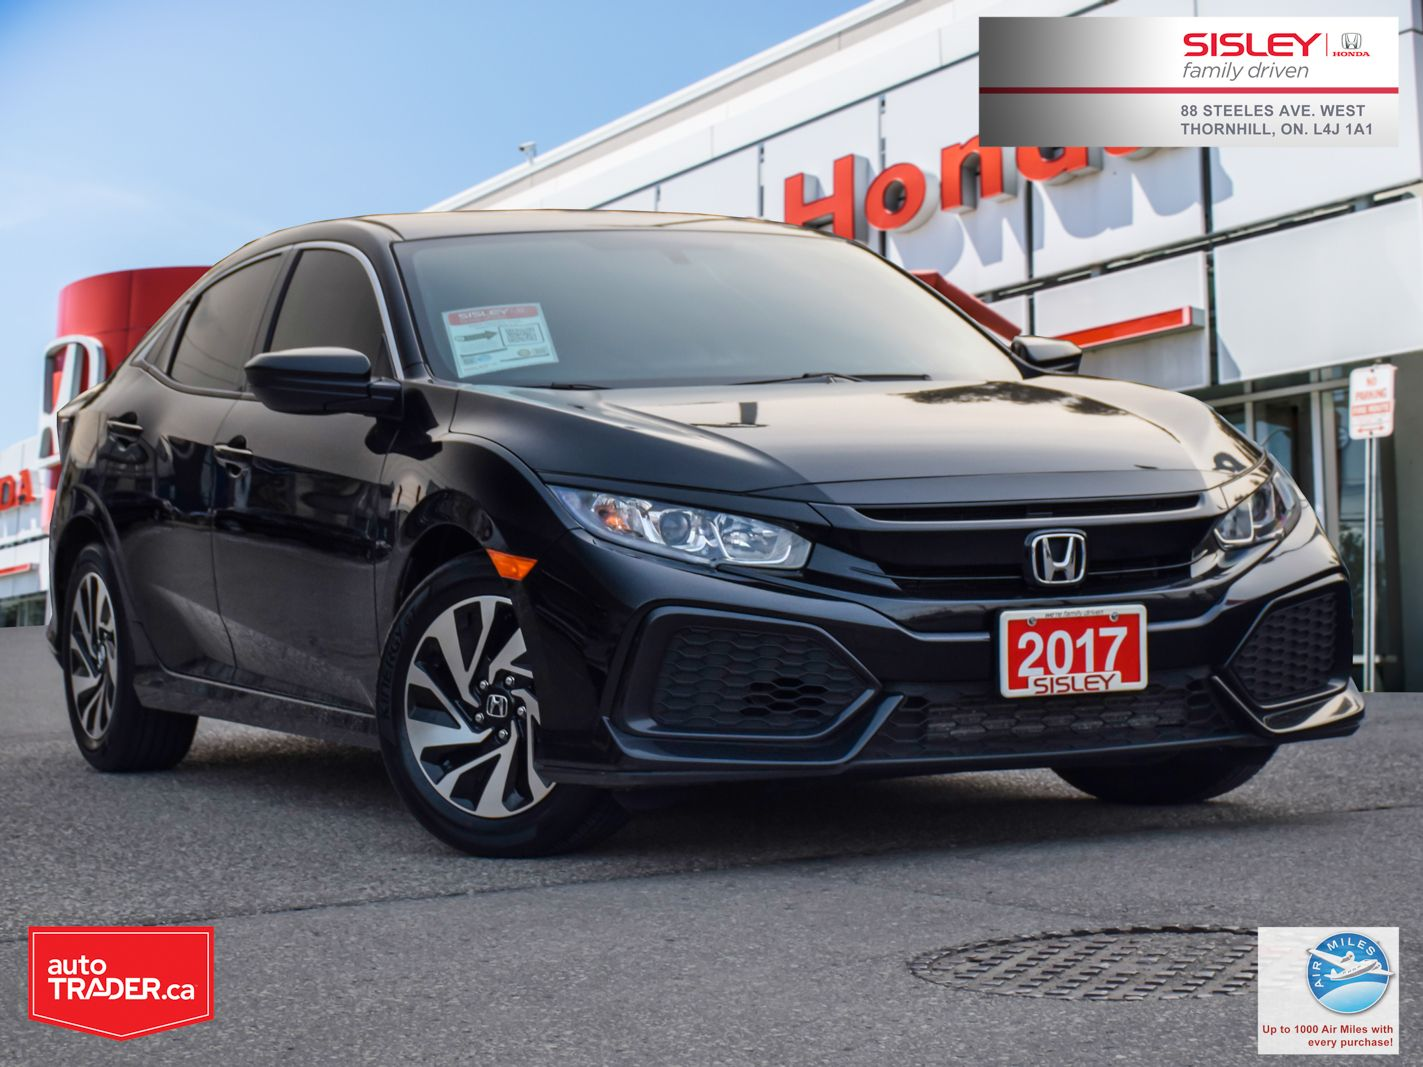 2017 Honda Civic Hatchback Image